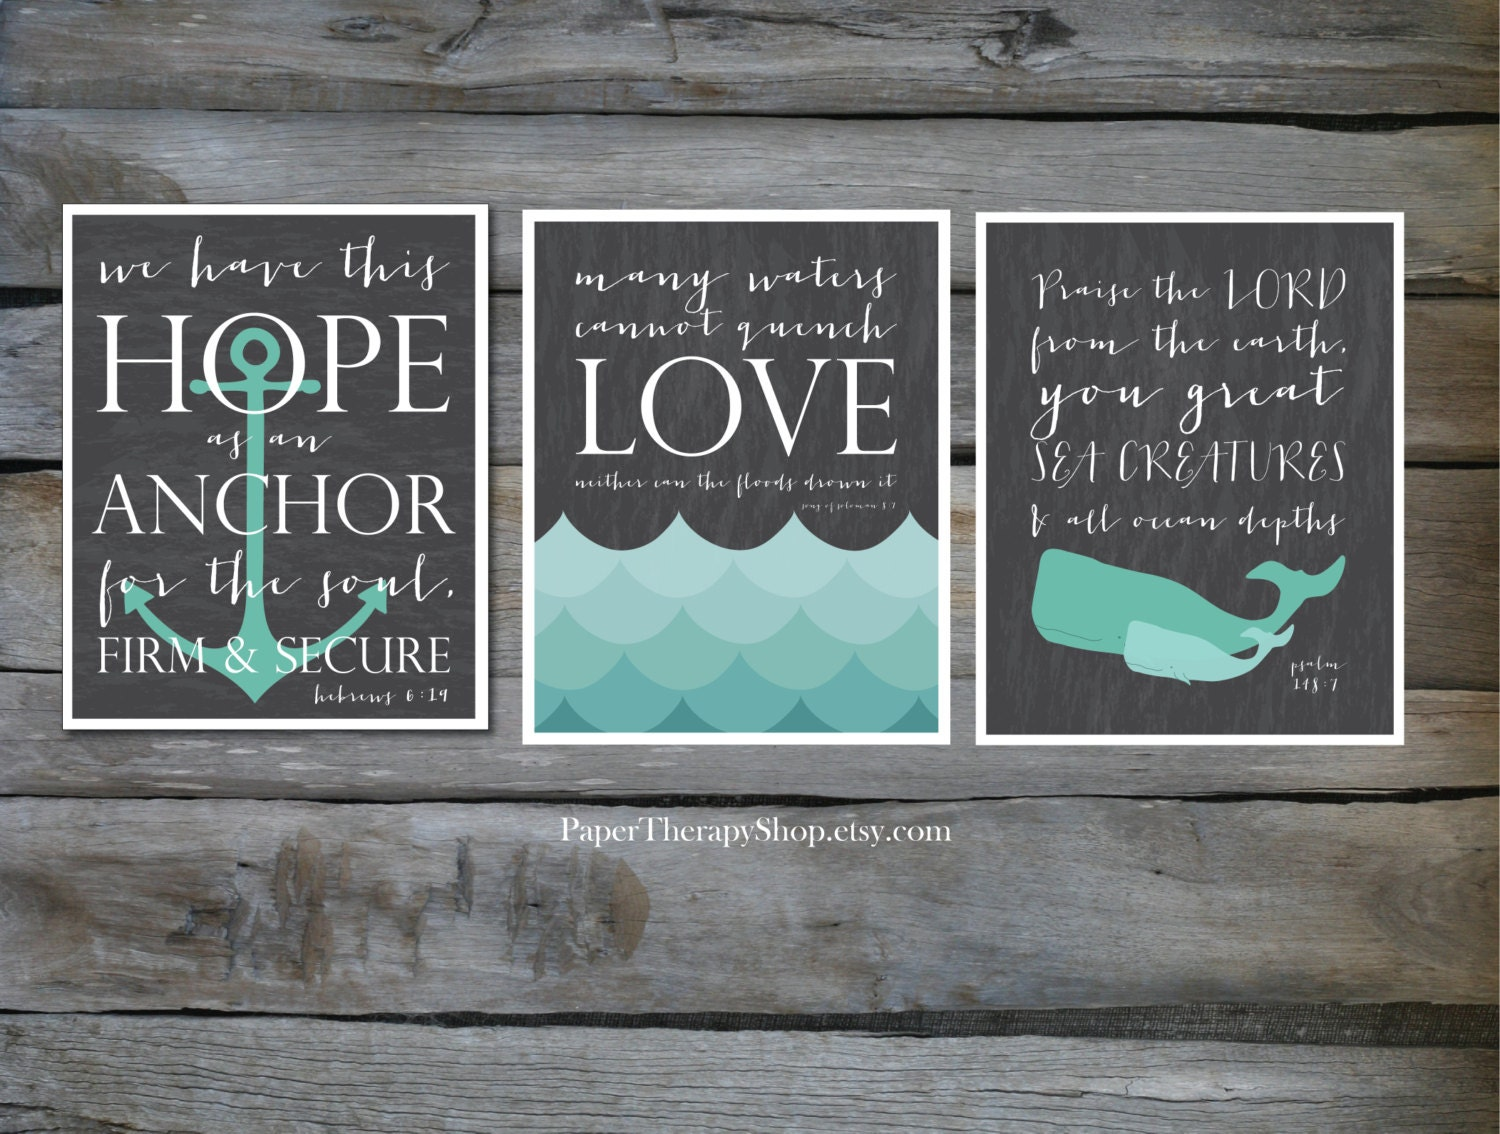 Captivating 3 Nautical Prints Based On Bible Verses Water WHALE And Awesome Ideas